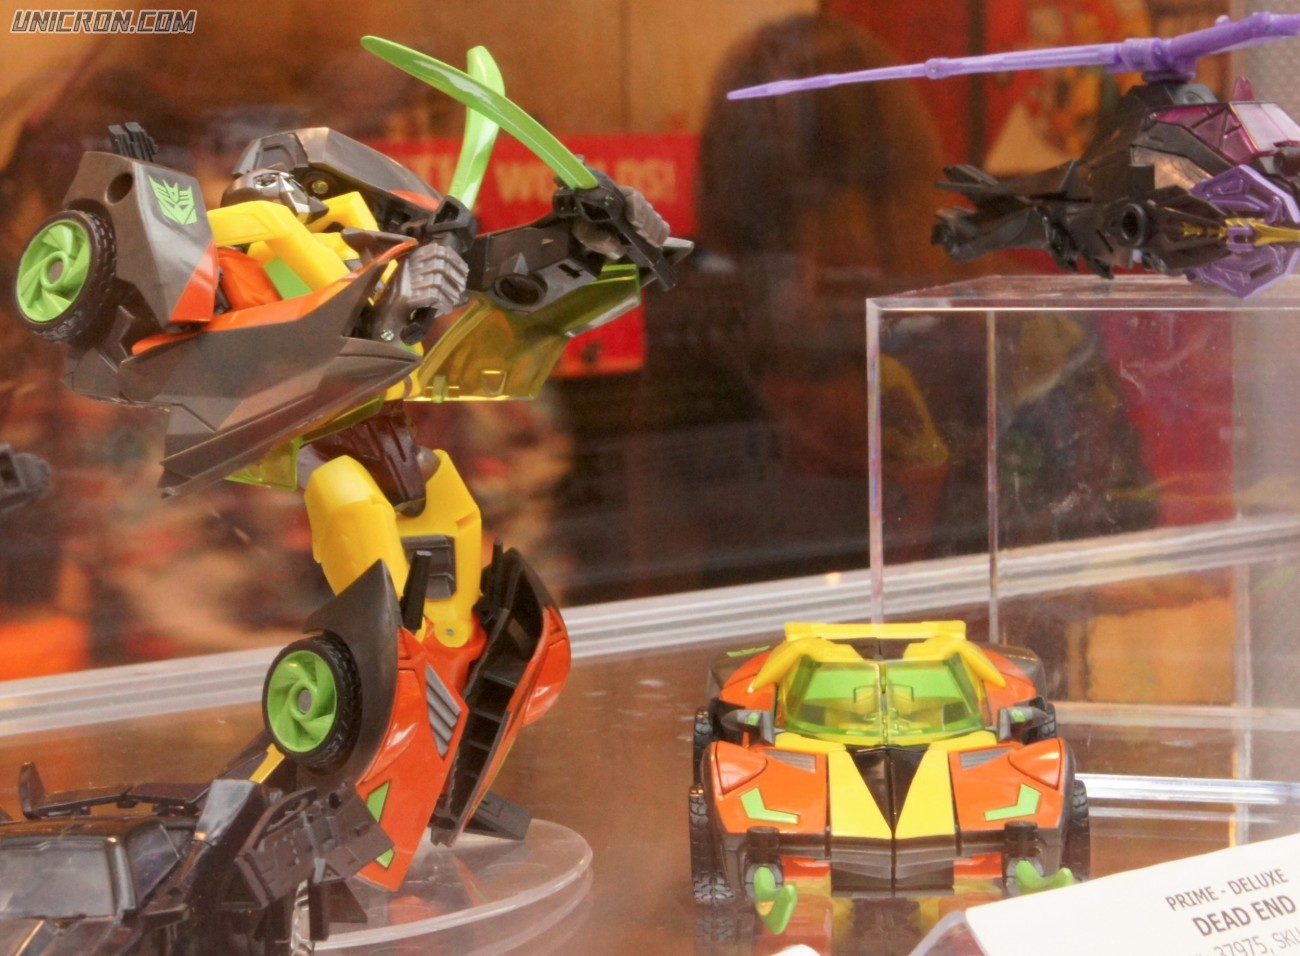 Transformers Prime Dead End toy